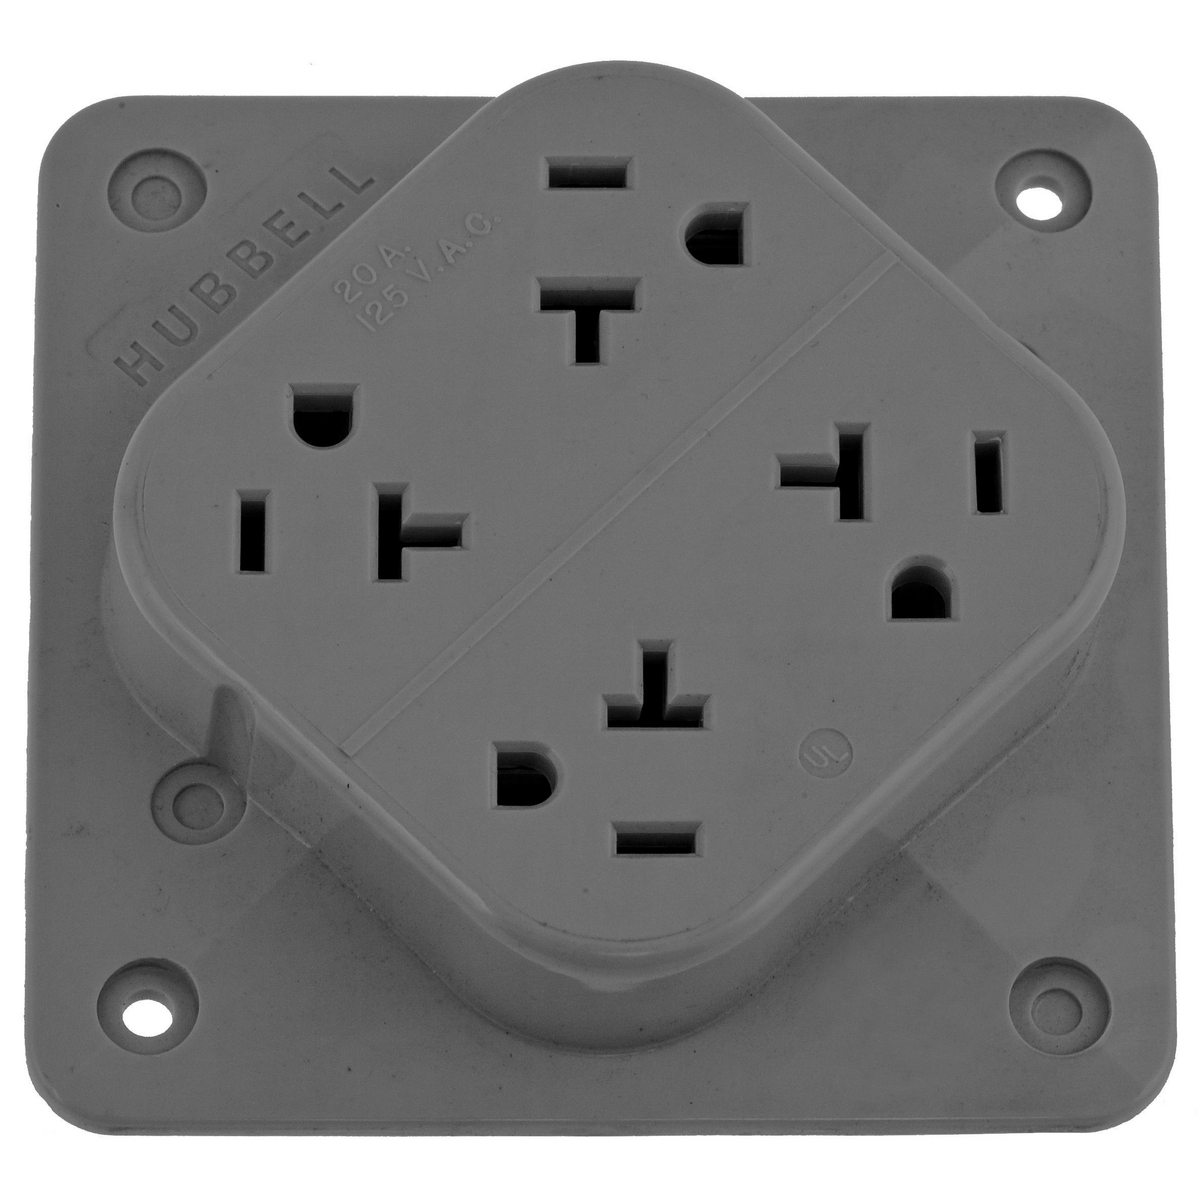 Hubbell HBL420GY4-PLEX Receptacle, 20A 125V, 5-20R, GY